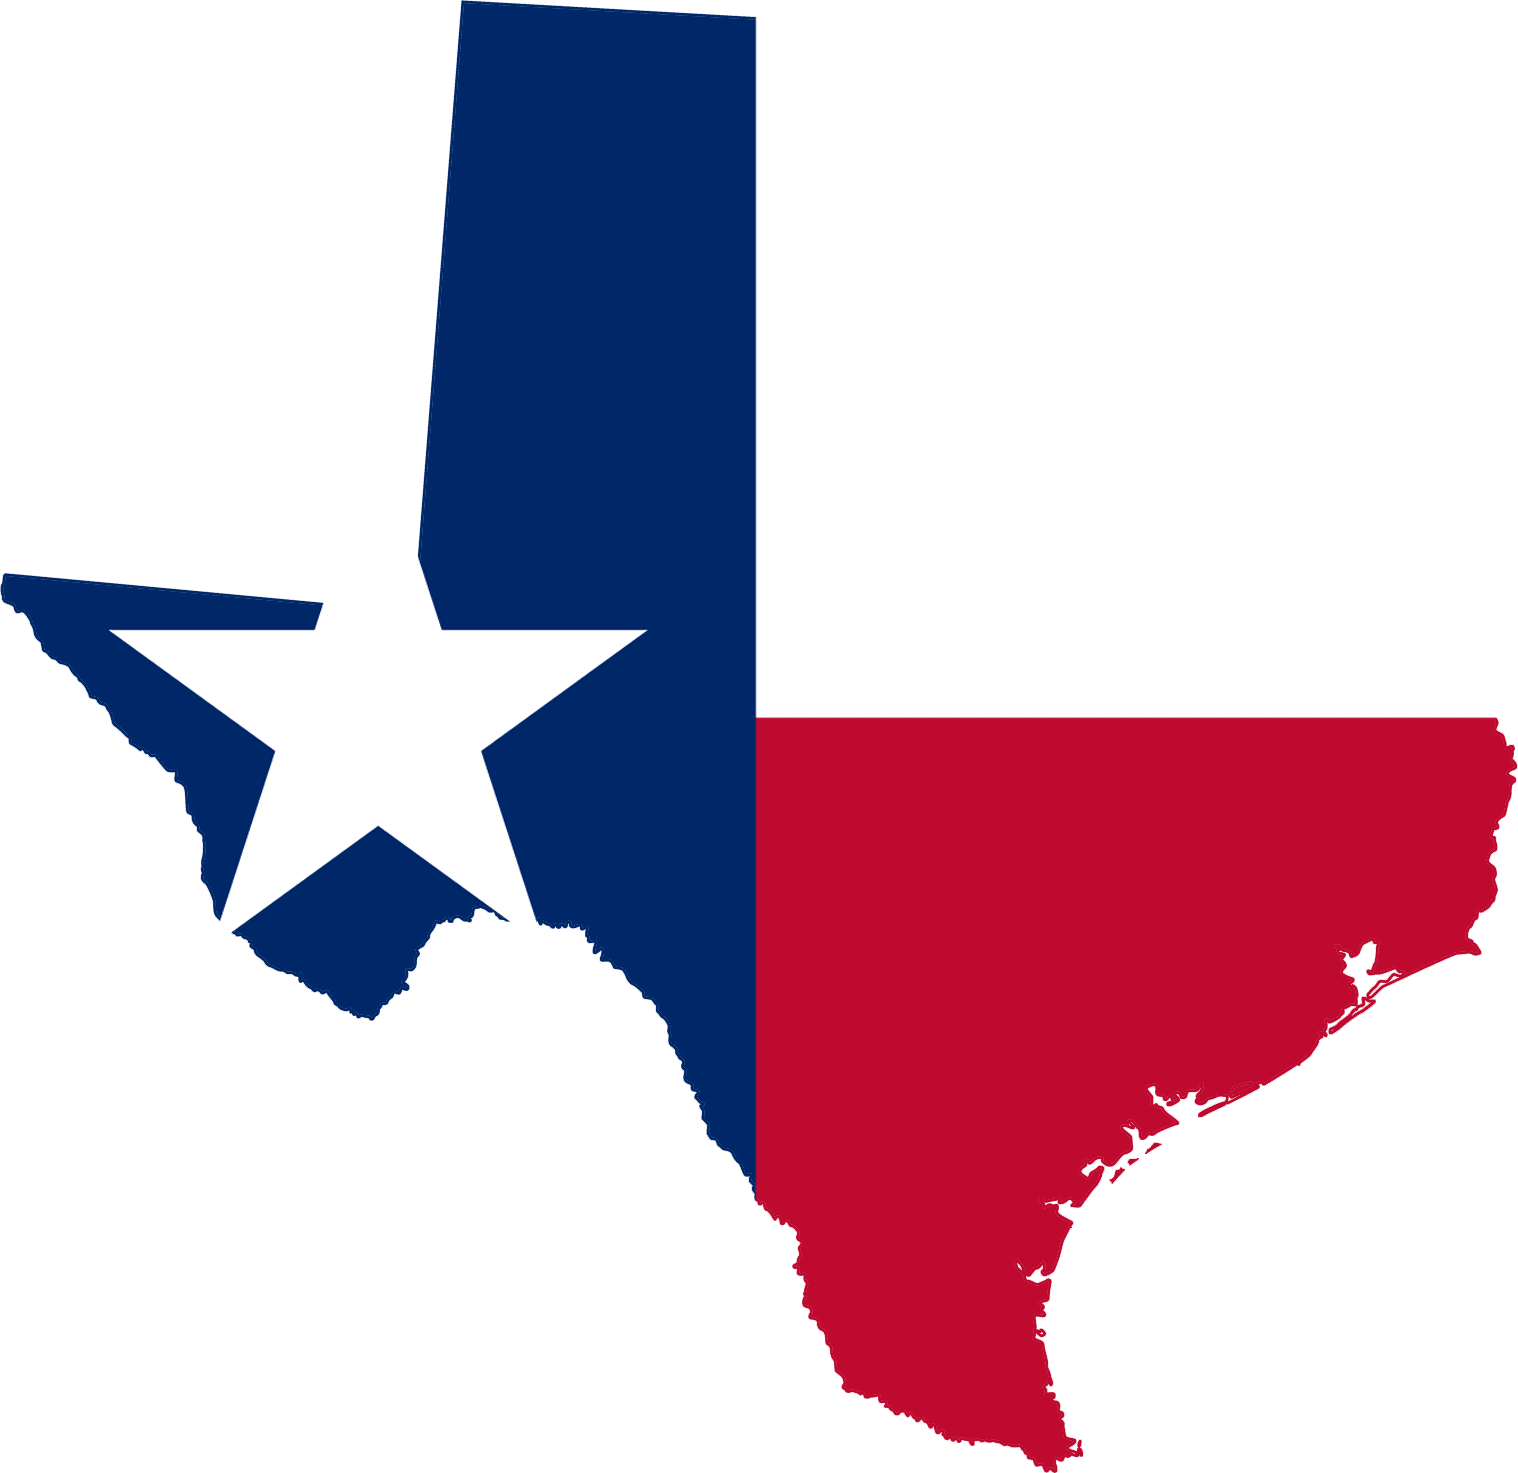 Free us map flag clipart jpg royalty free Texas map flag clipart - ClipartFox jpg royalty free